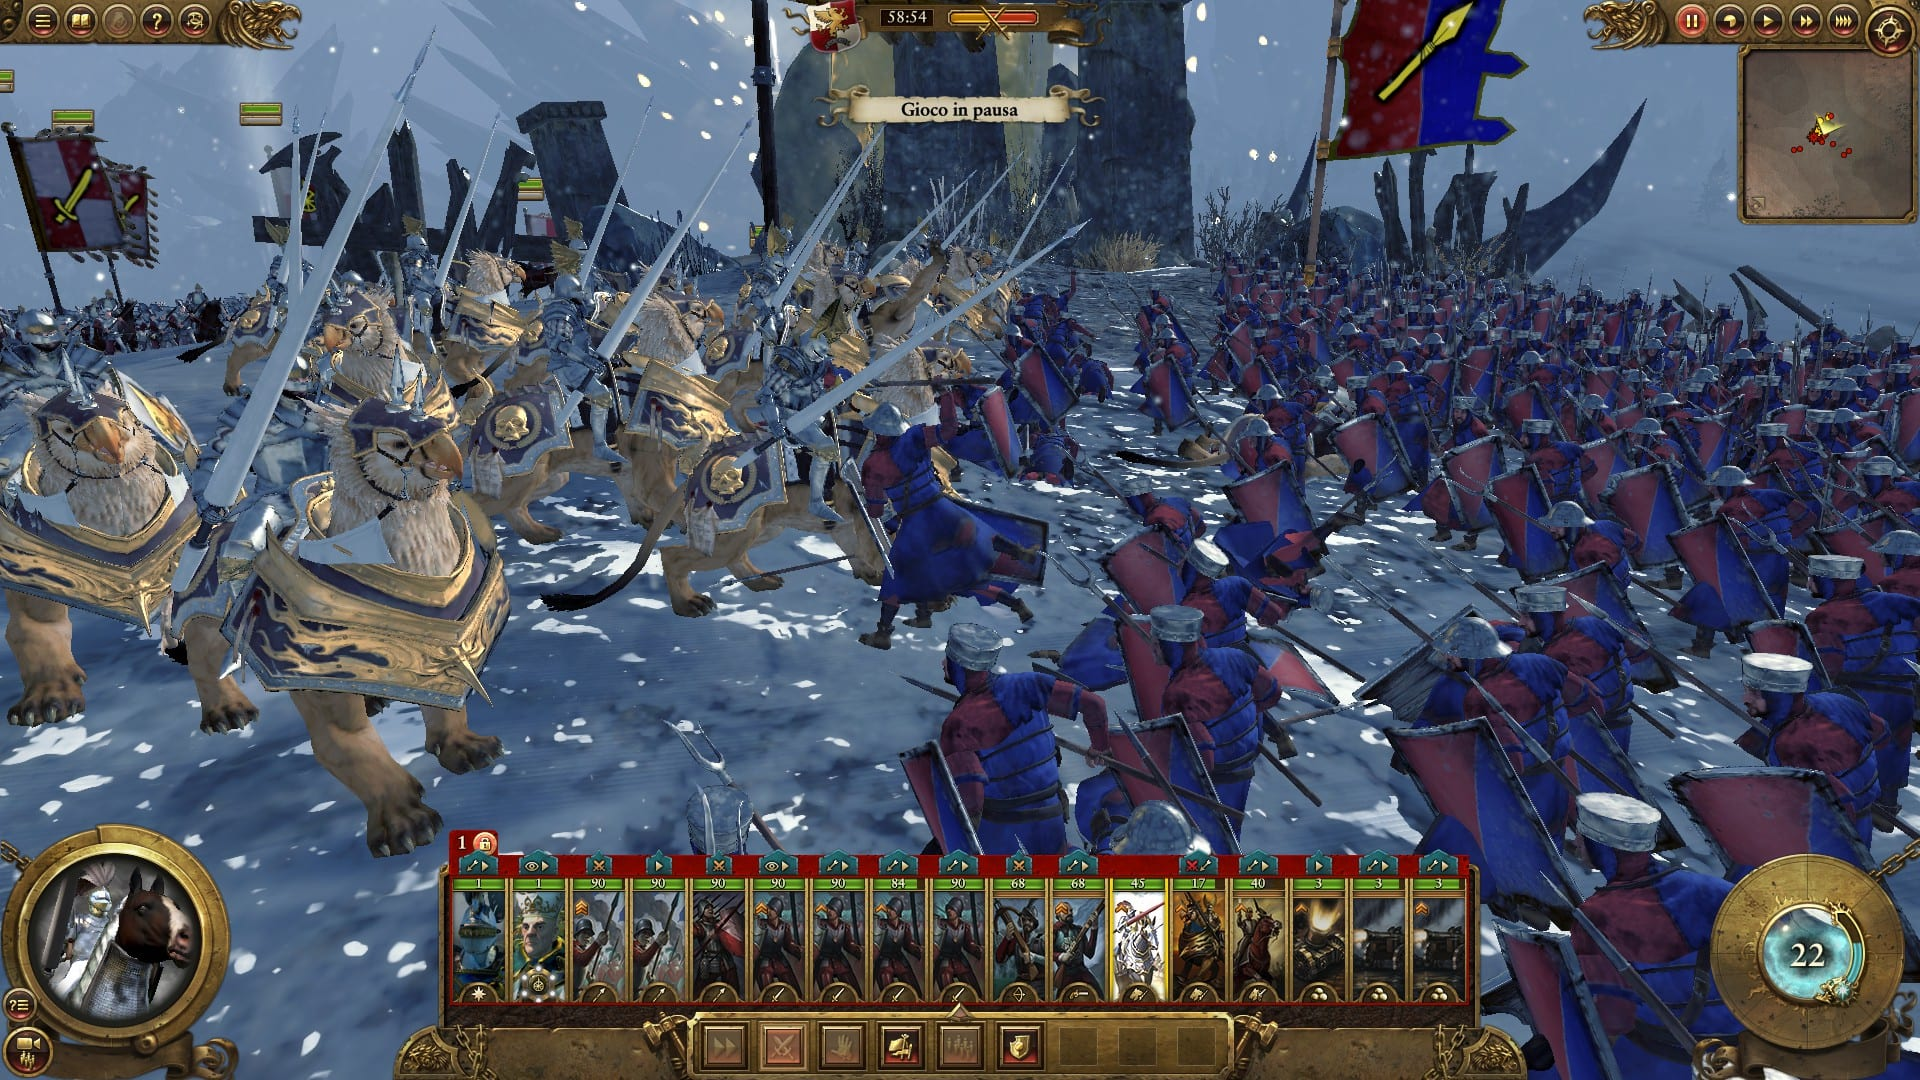 pc gaming.it total war warhammer recensione 2 10 - Total War: Warhammer- Recensione